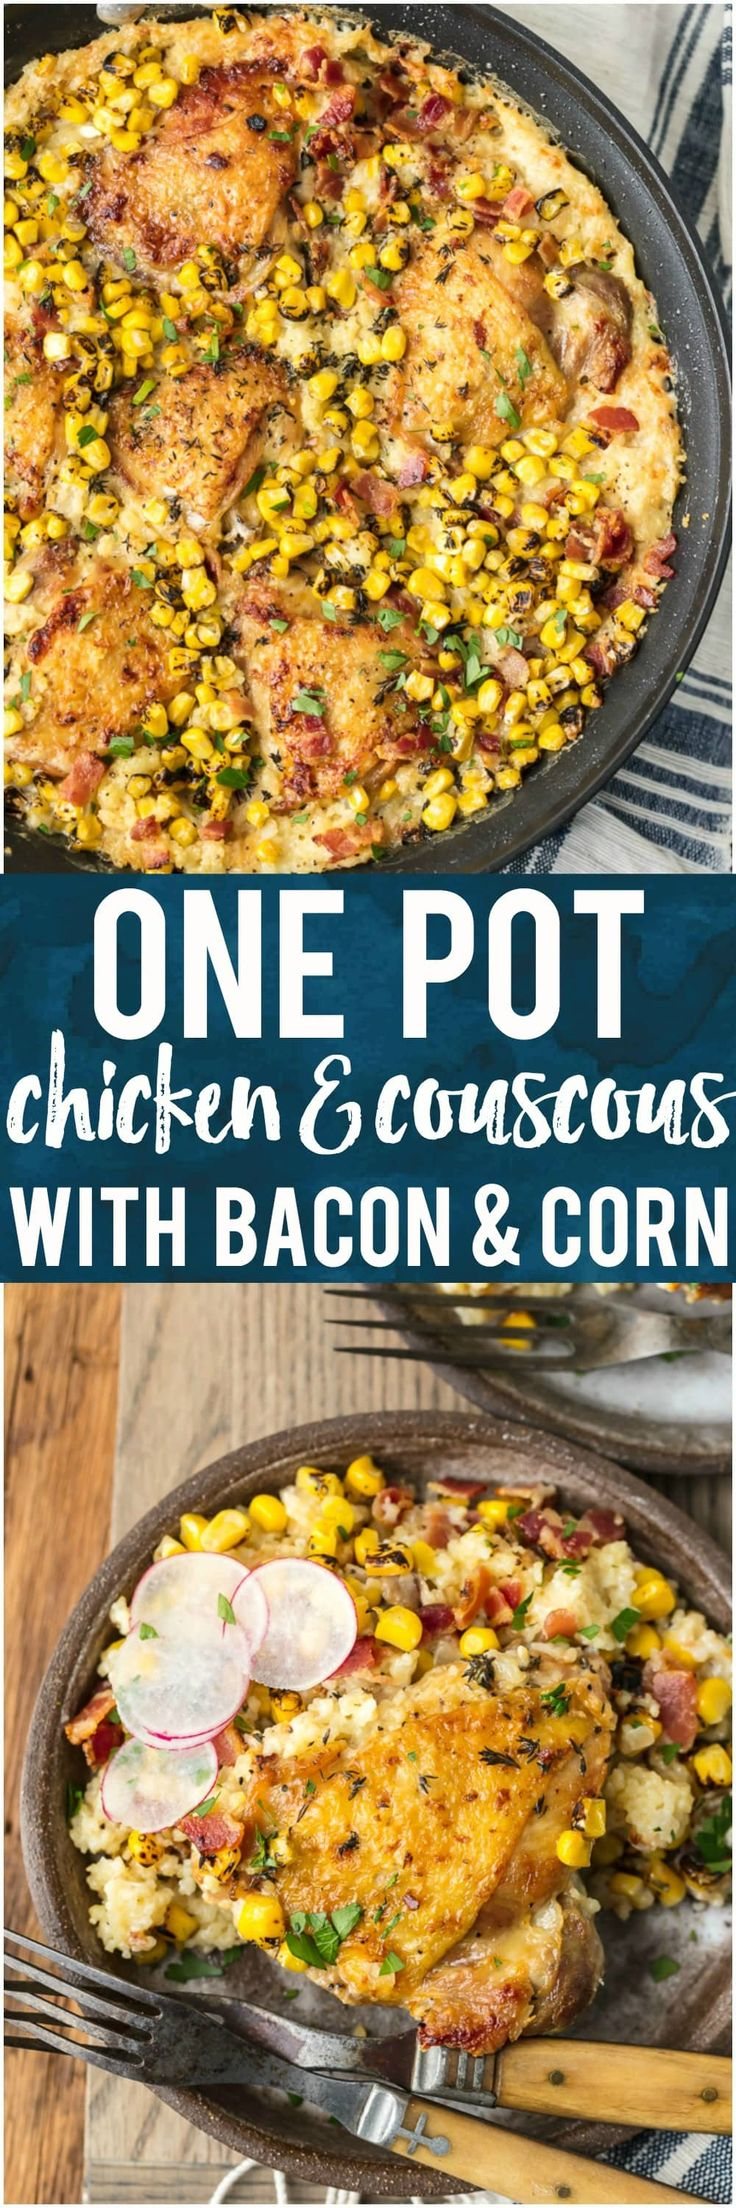 This ONE POT COUSCOUS CHICKEN with BACON AND CORN will be your new favorite one pan dinner! I love that this is main course and side dish in one, all baked together in flavorful goodness. So delicious with so little effort and virtually zero cleanup! #chi